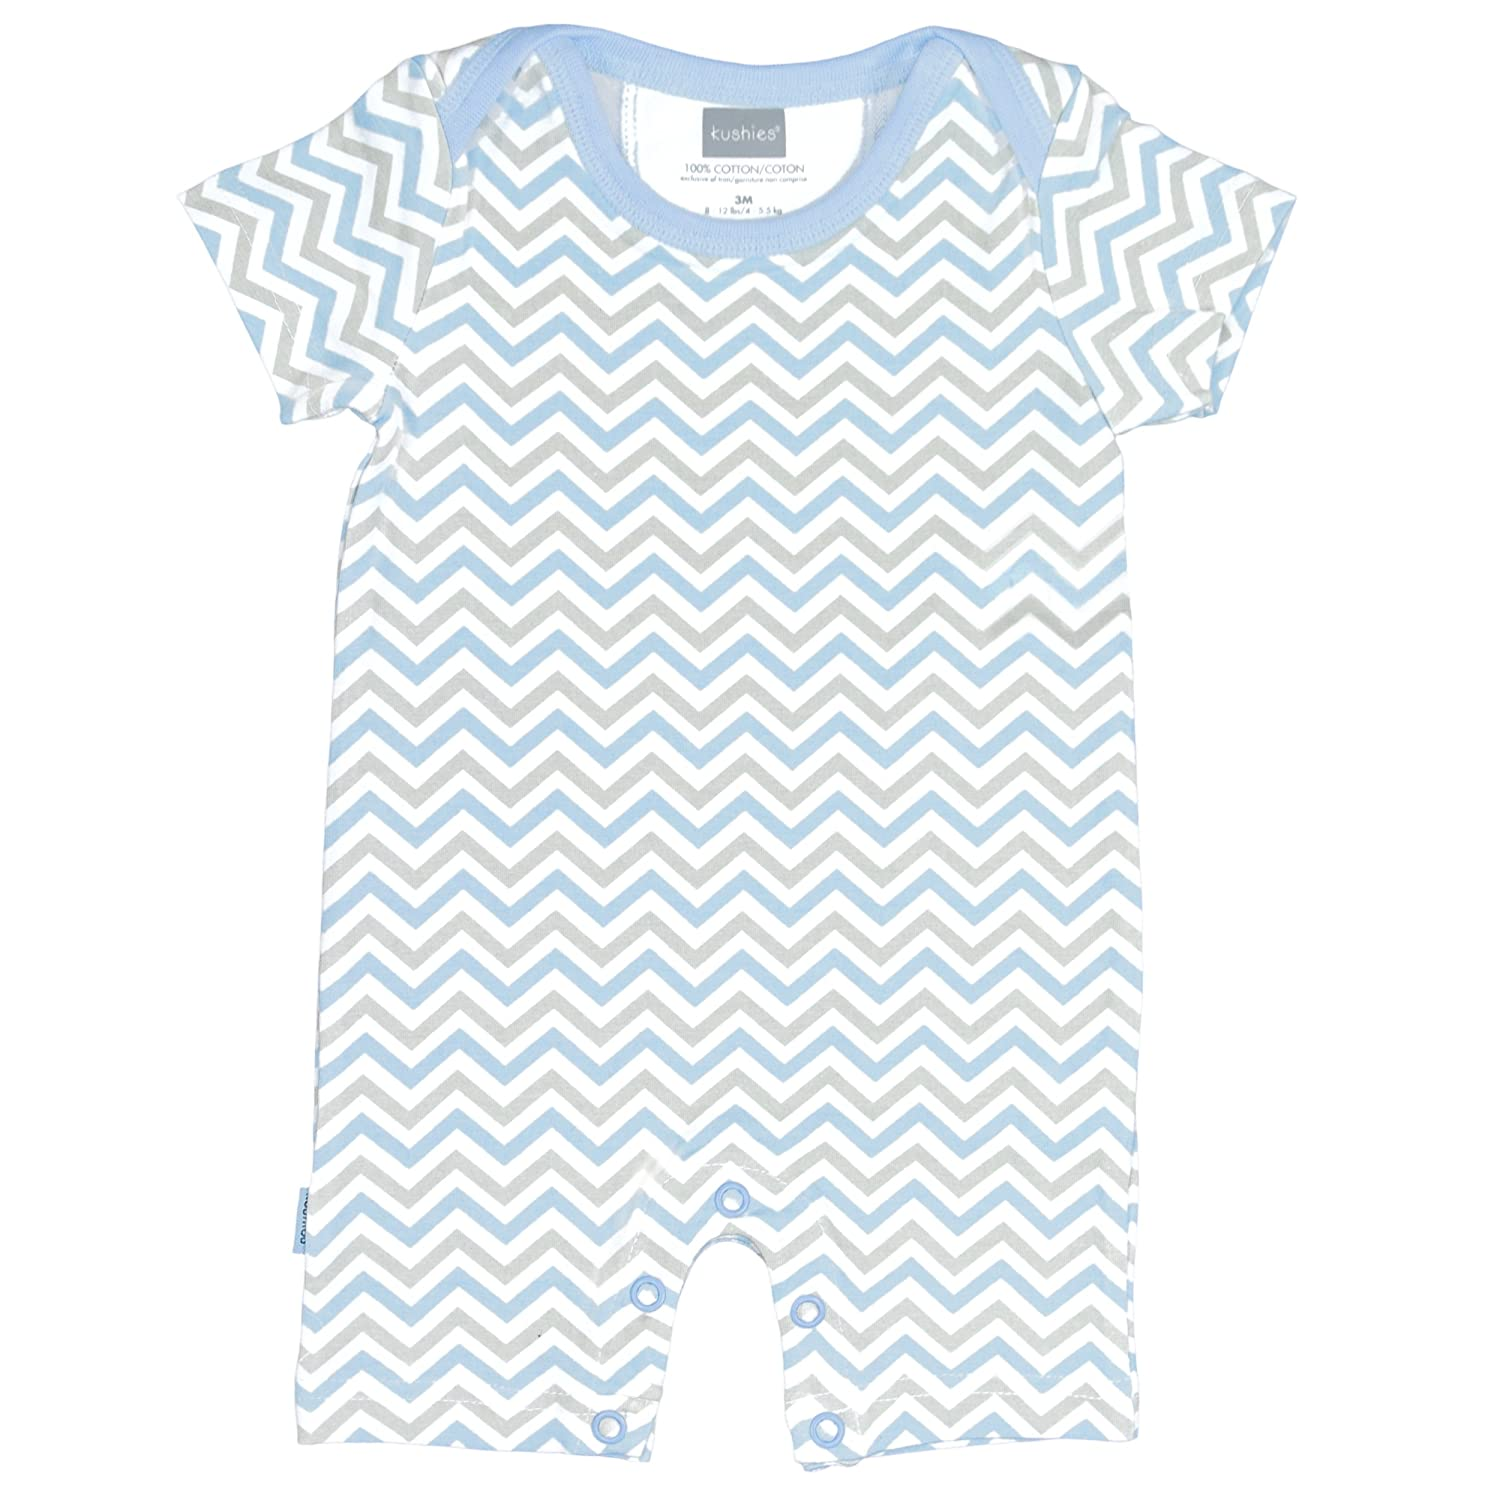 Kushies Baby Boys Striped One-Piece Short Sleeve Romper